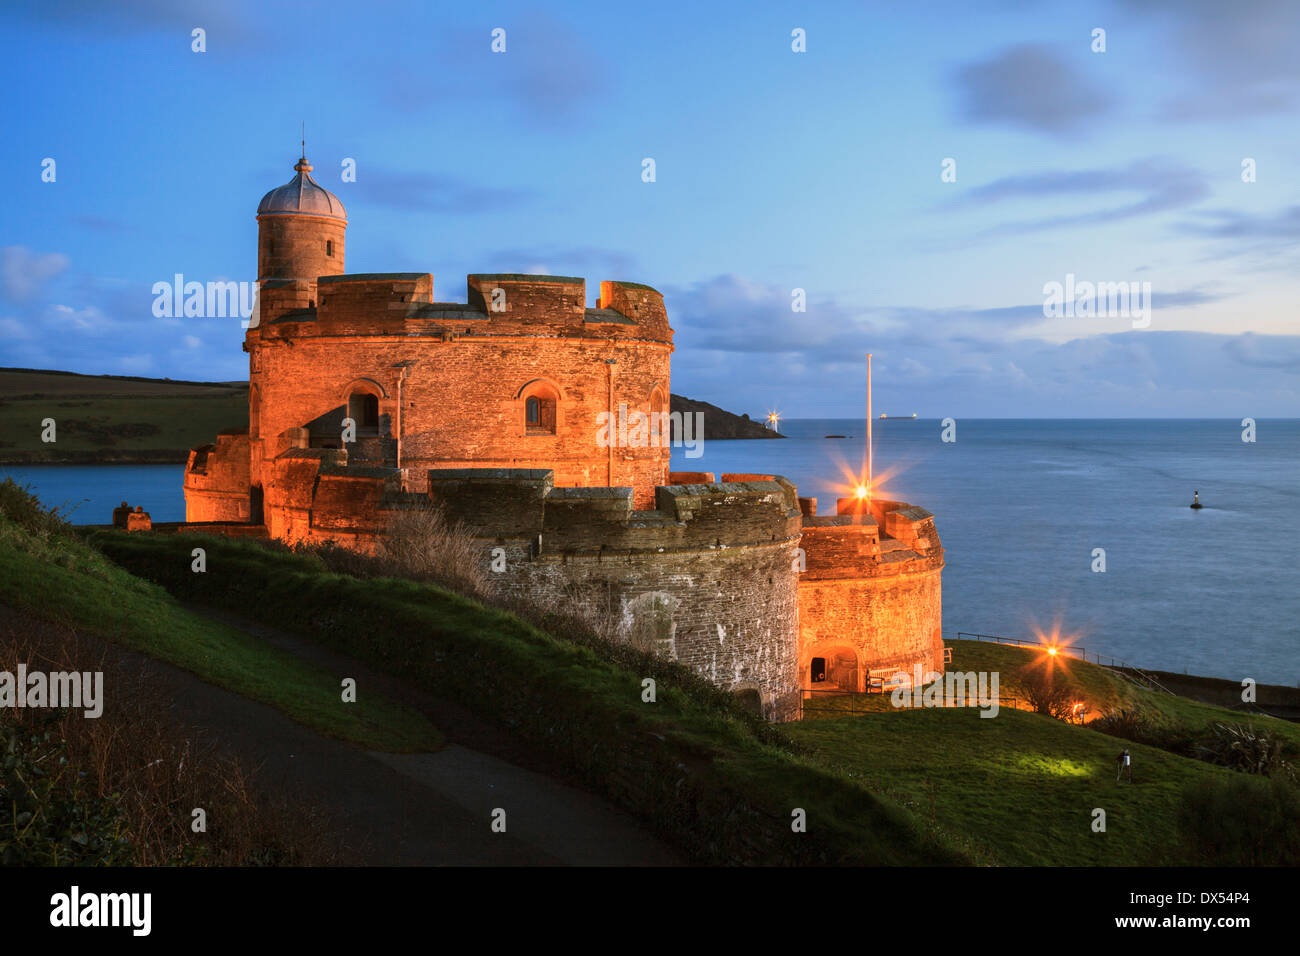 St Mawes Castle captured during twilight - Stock Image